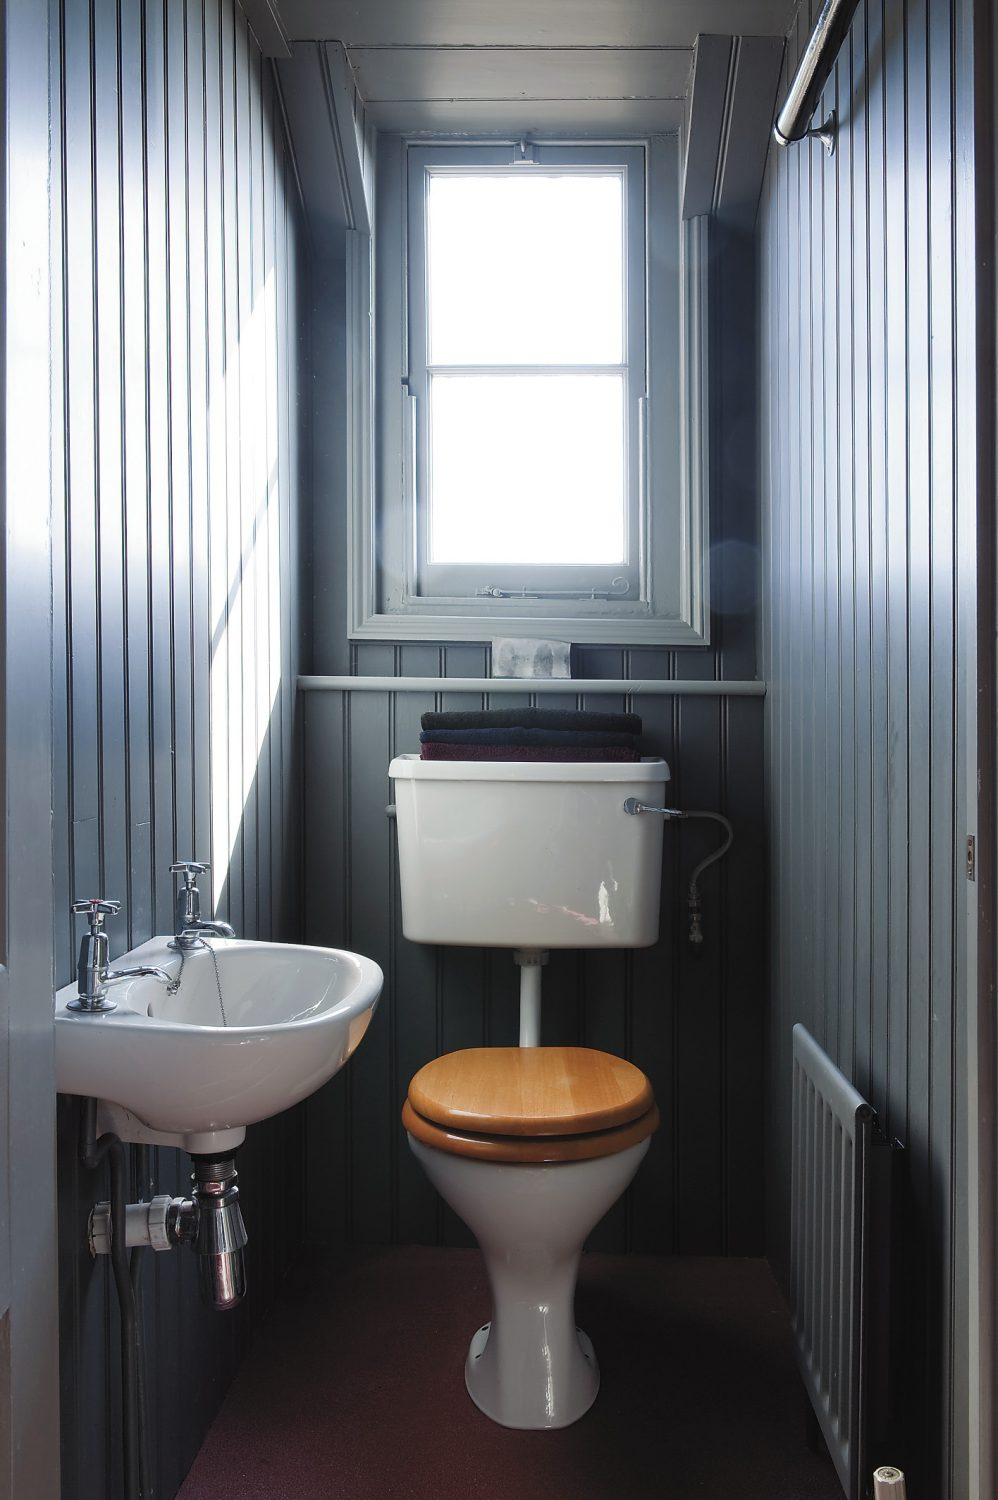 the loo has panoramic views over the Hastings roof tops